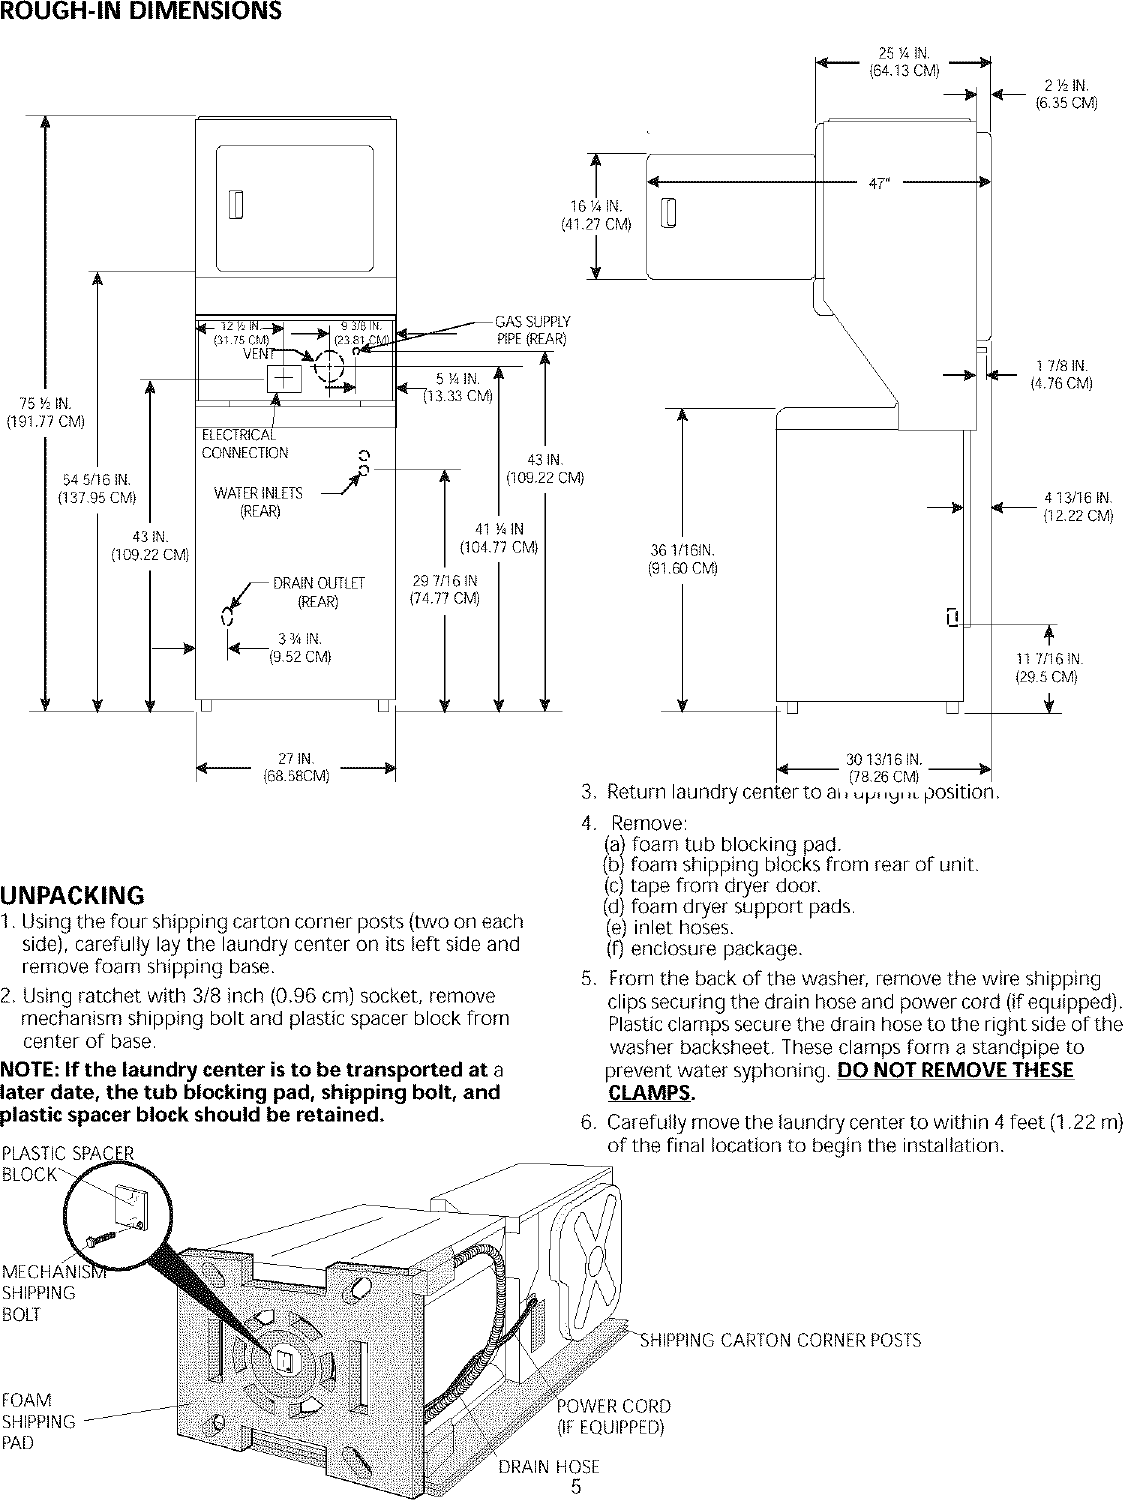 Page 5 of 8 - Frigidaire FEX831CS0 User Manual  LAUNDRY CENTER - Manuals And Guides L0304056